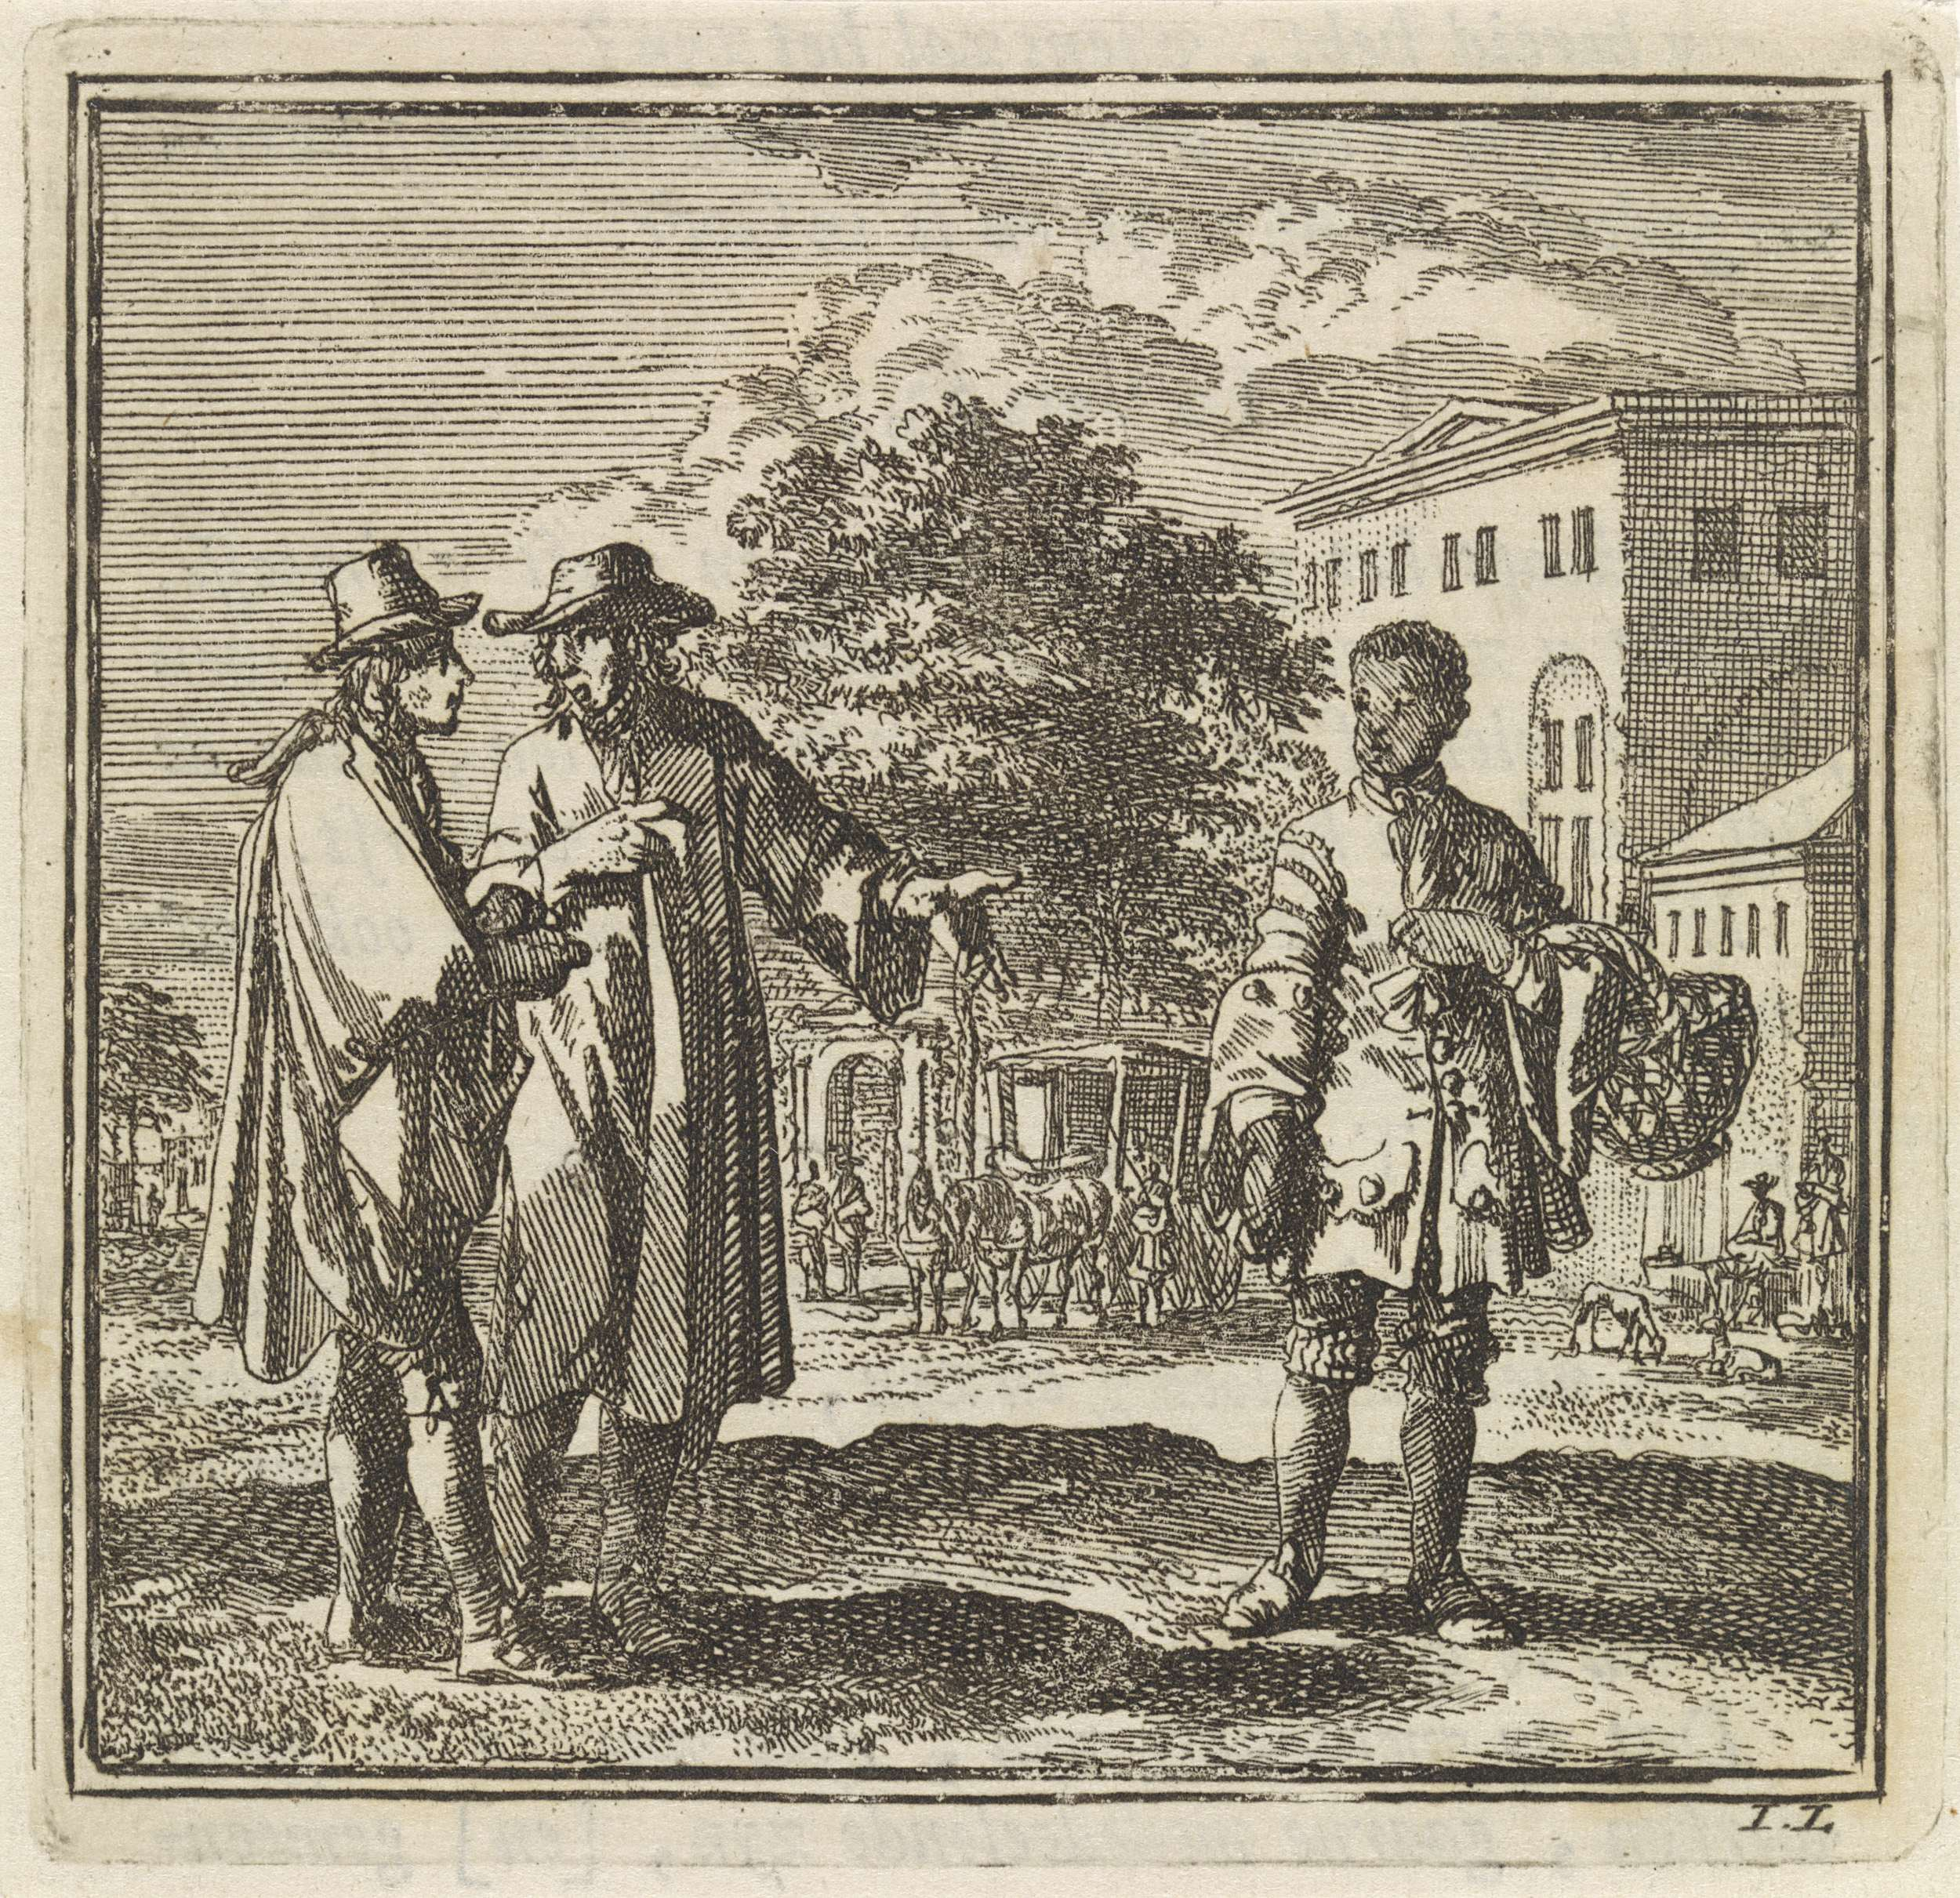 Two men pointing at boy by Jan Luyken, c. 1711, courtesy of the Rijksmuseum, Amsterdam